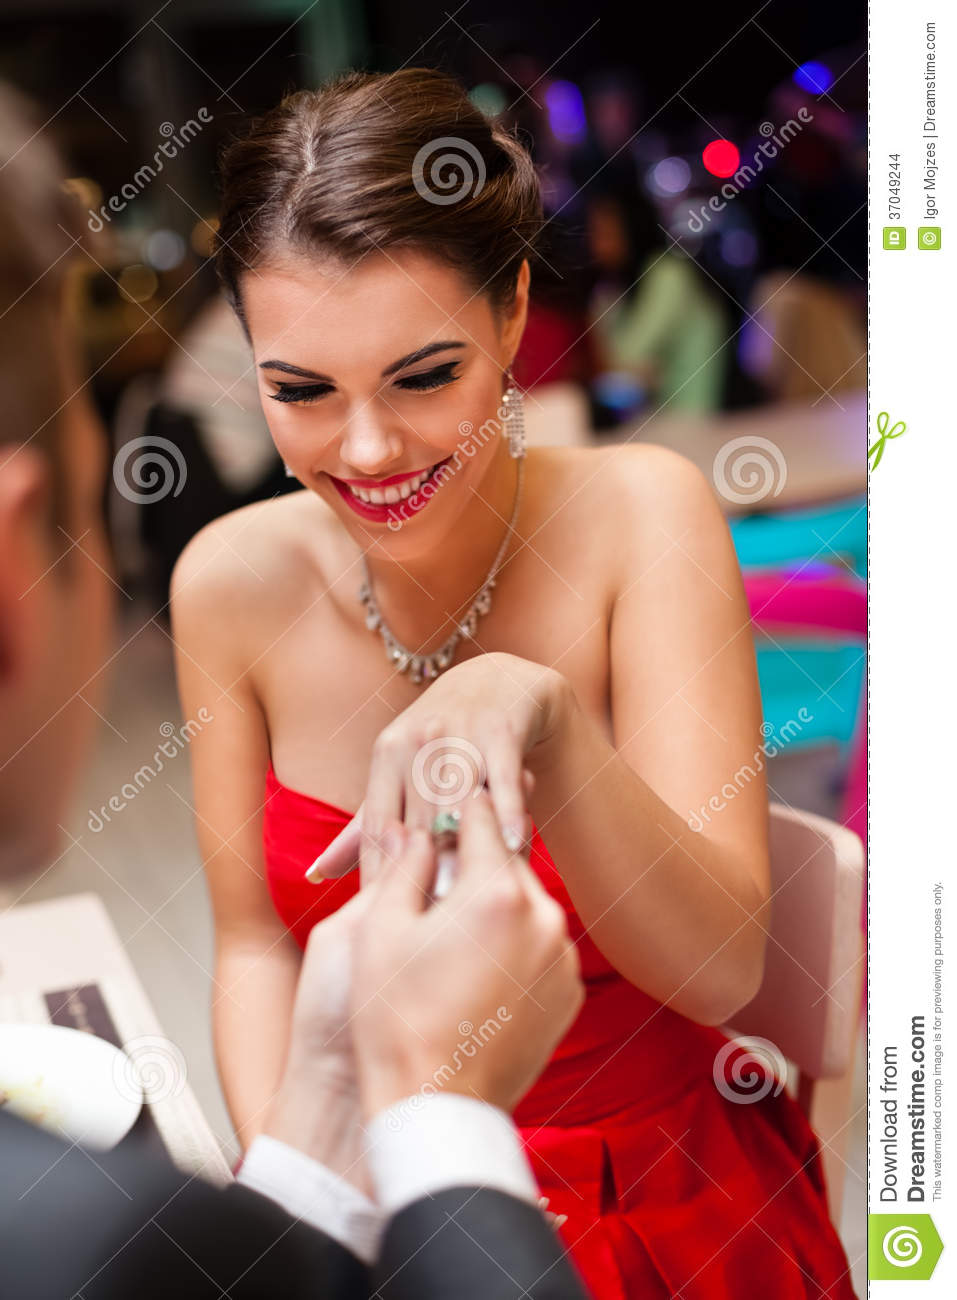 Man proposing with an engagement ring to his love